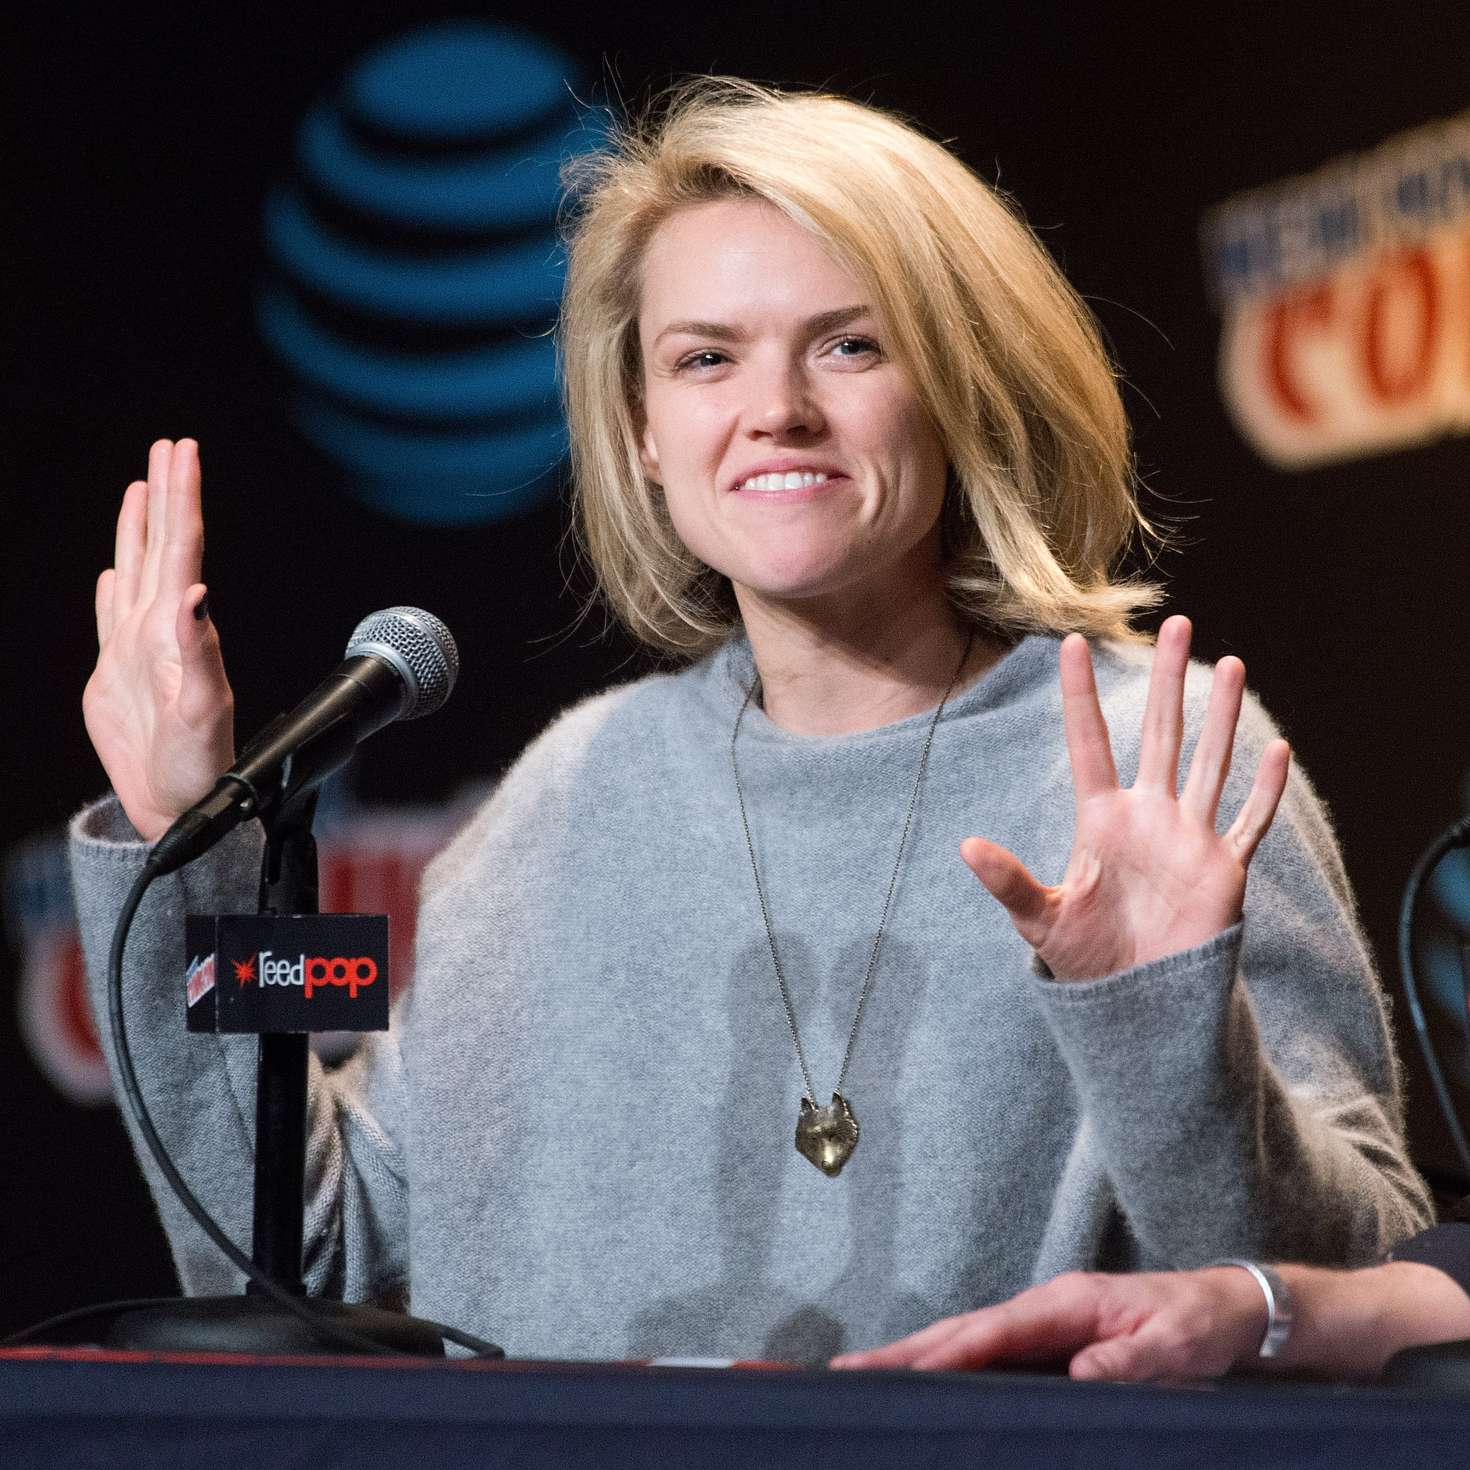 Erin richards gotham panel at new york comic con nude (77 pic)